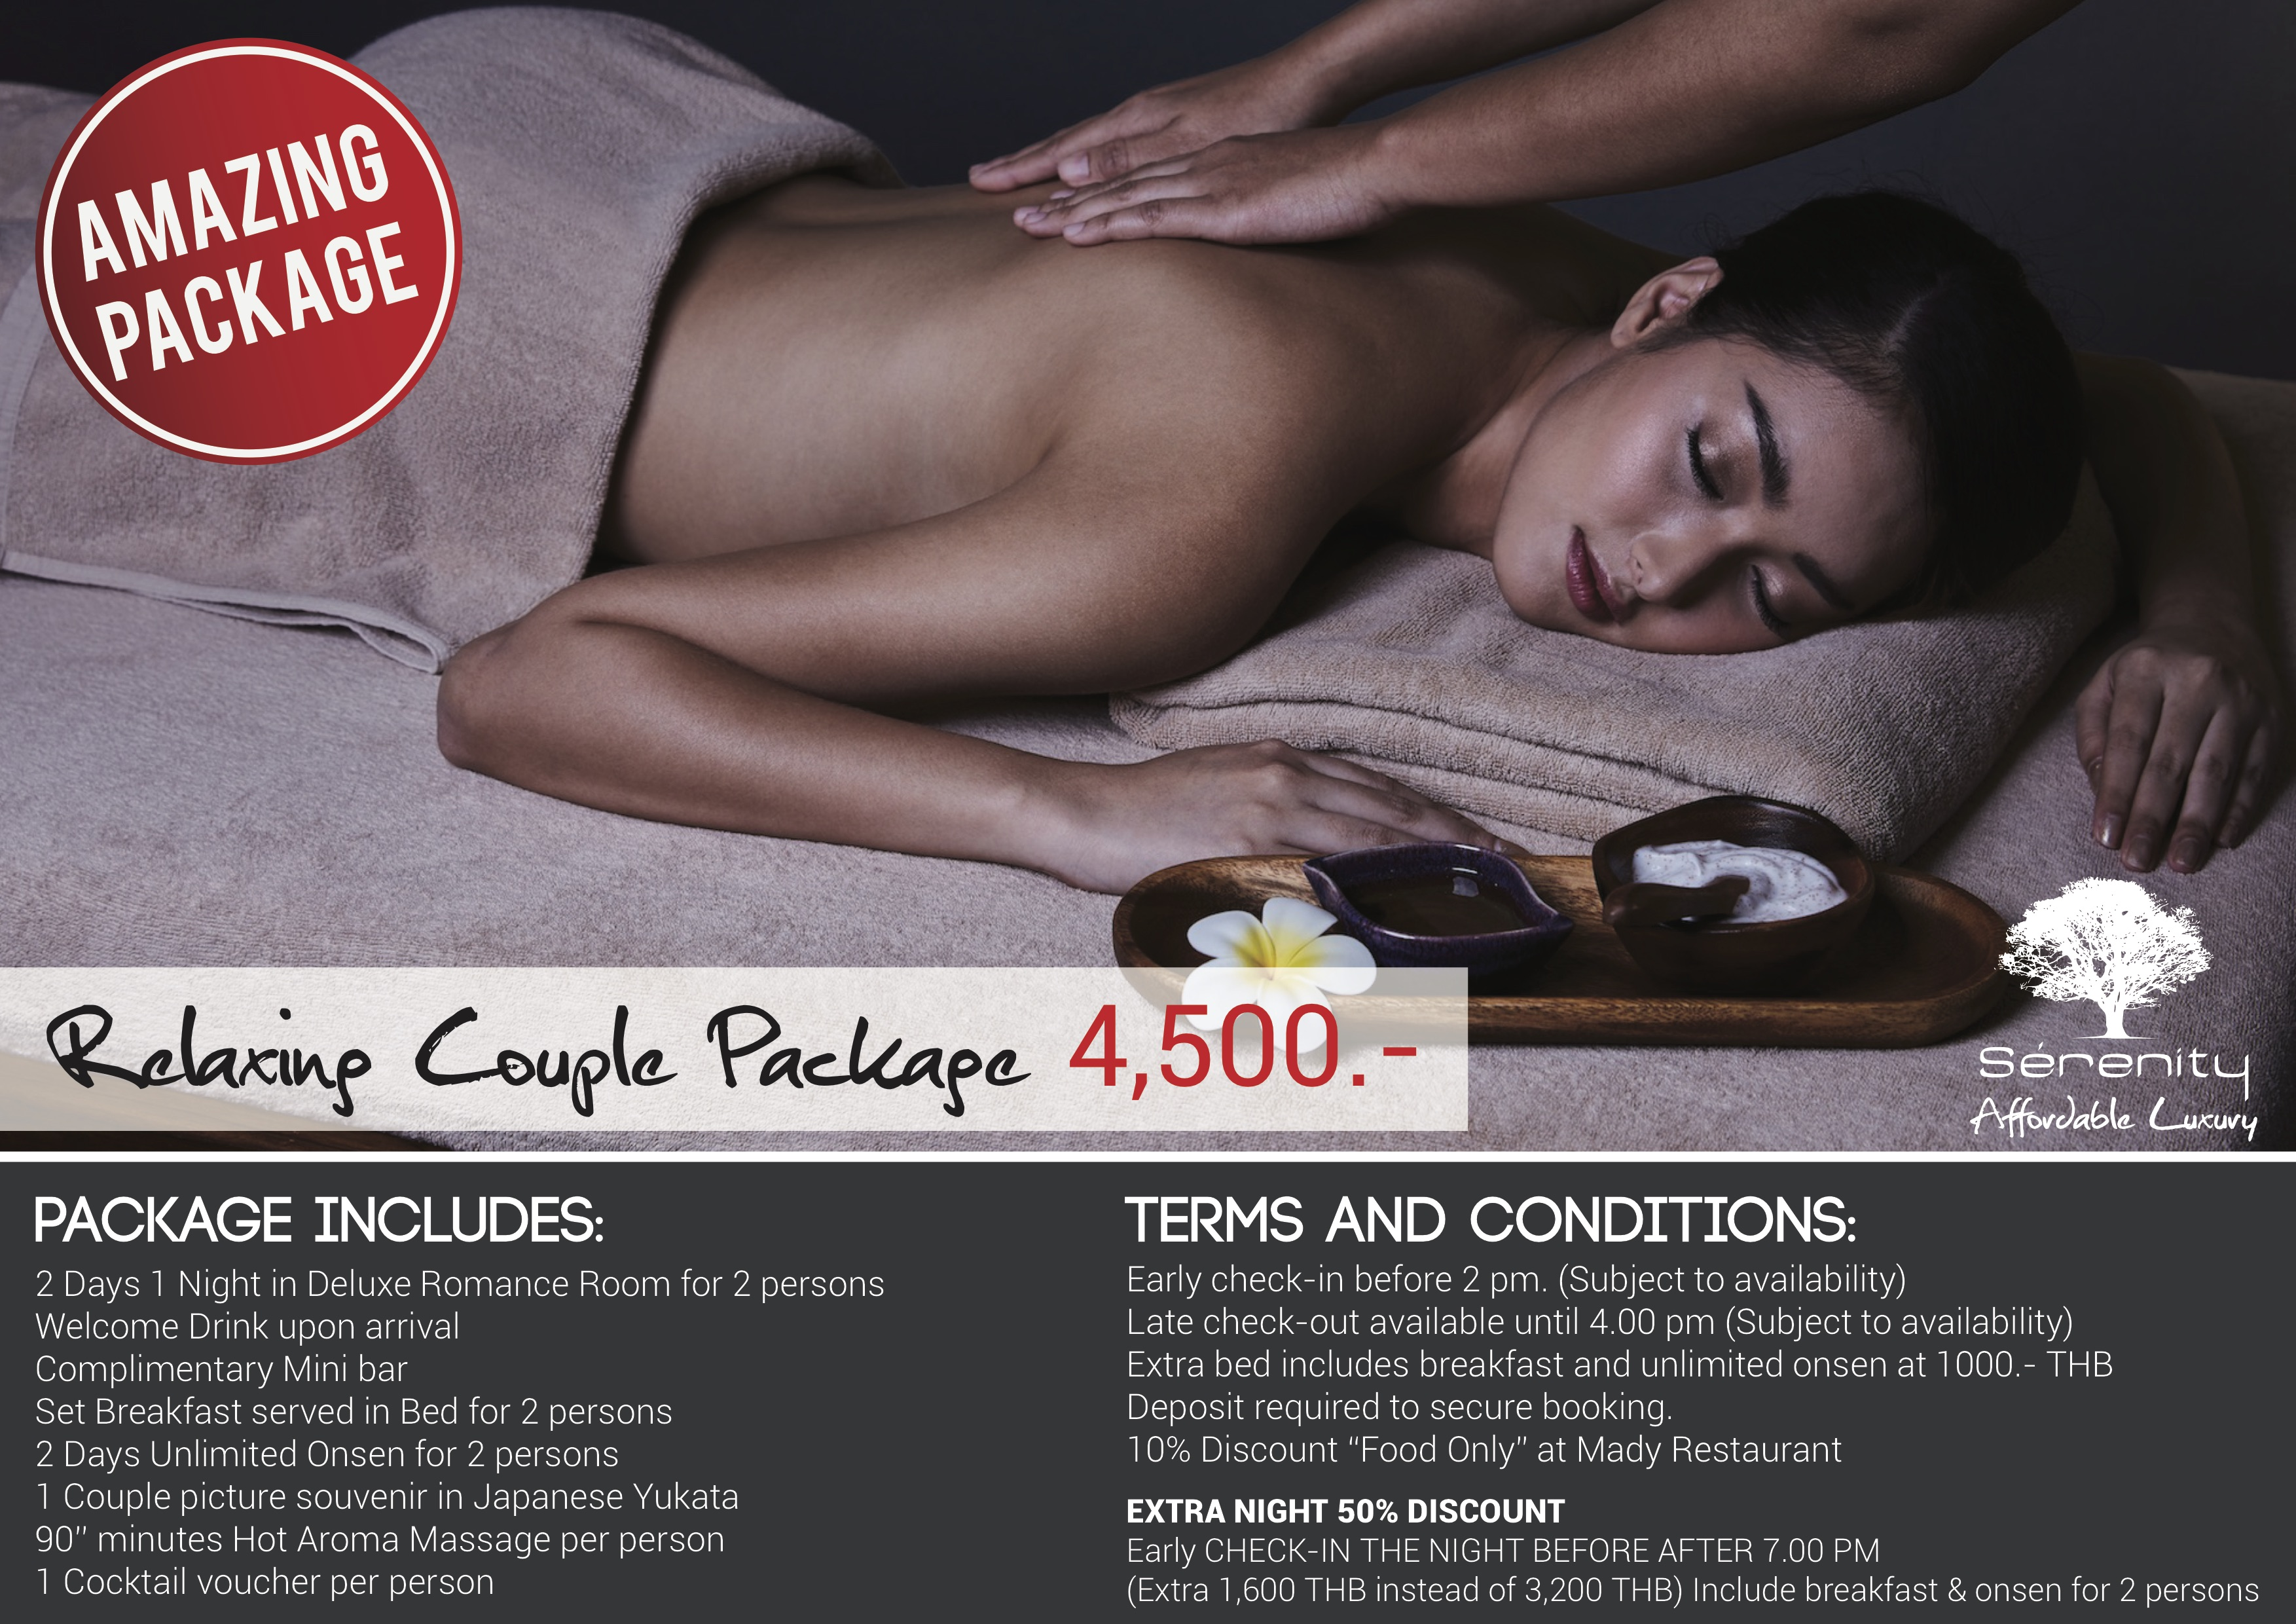 relaxing couple package details